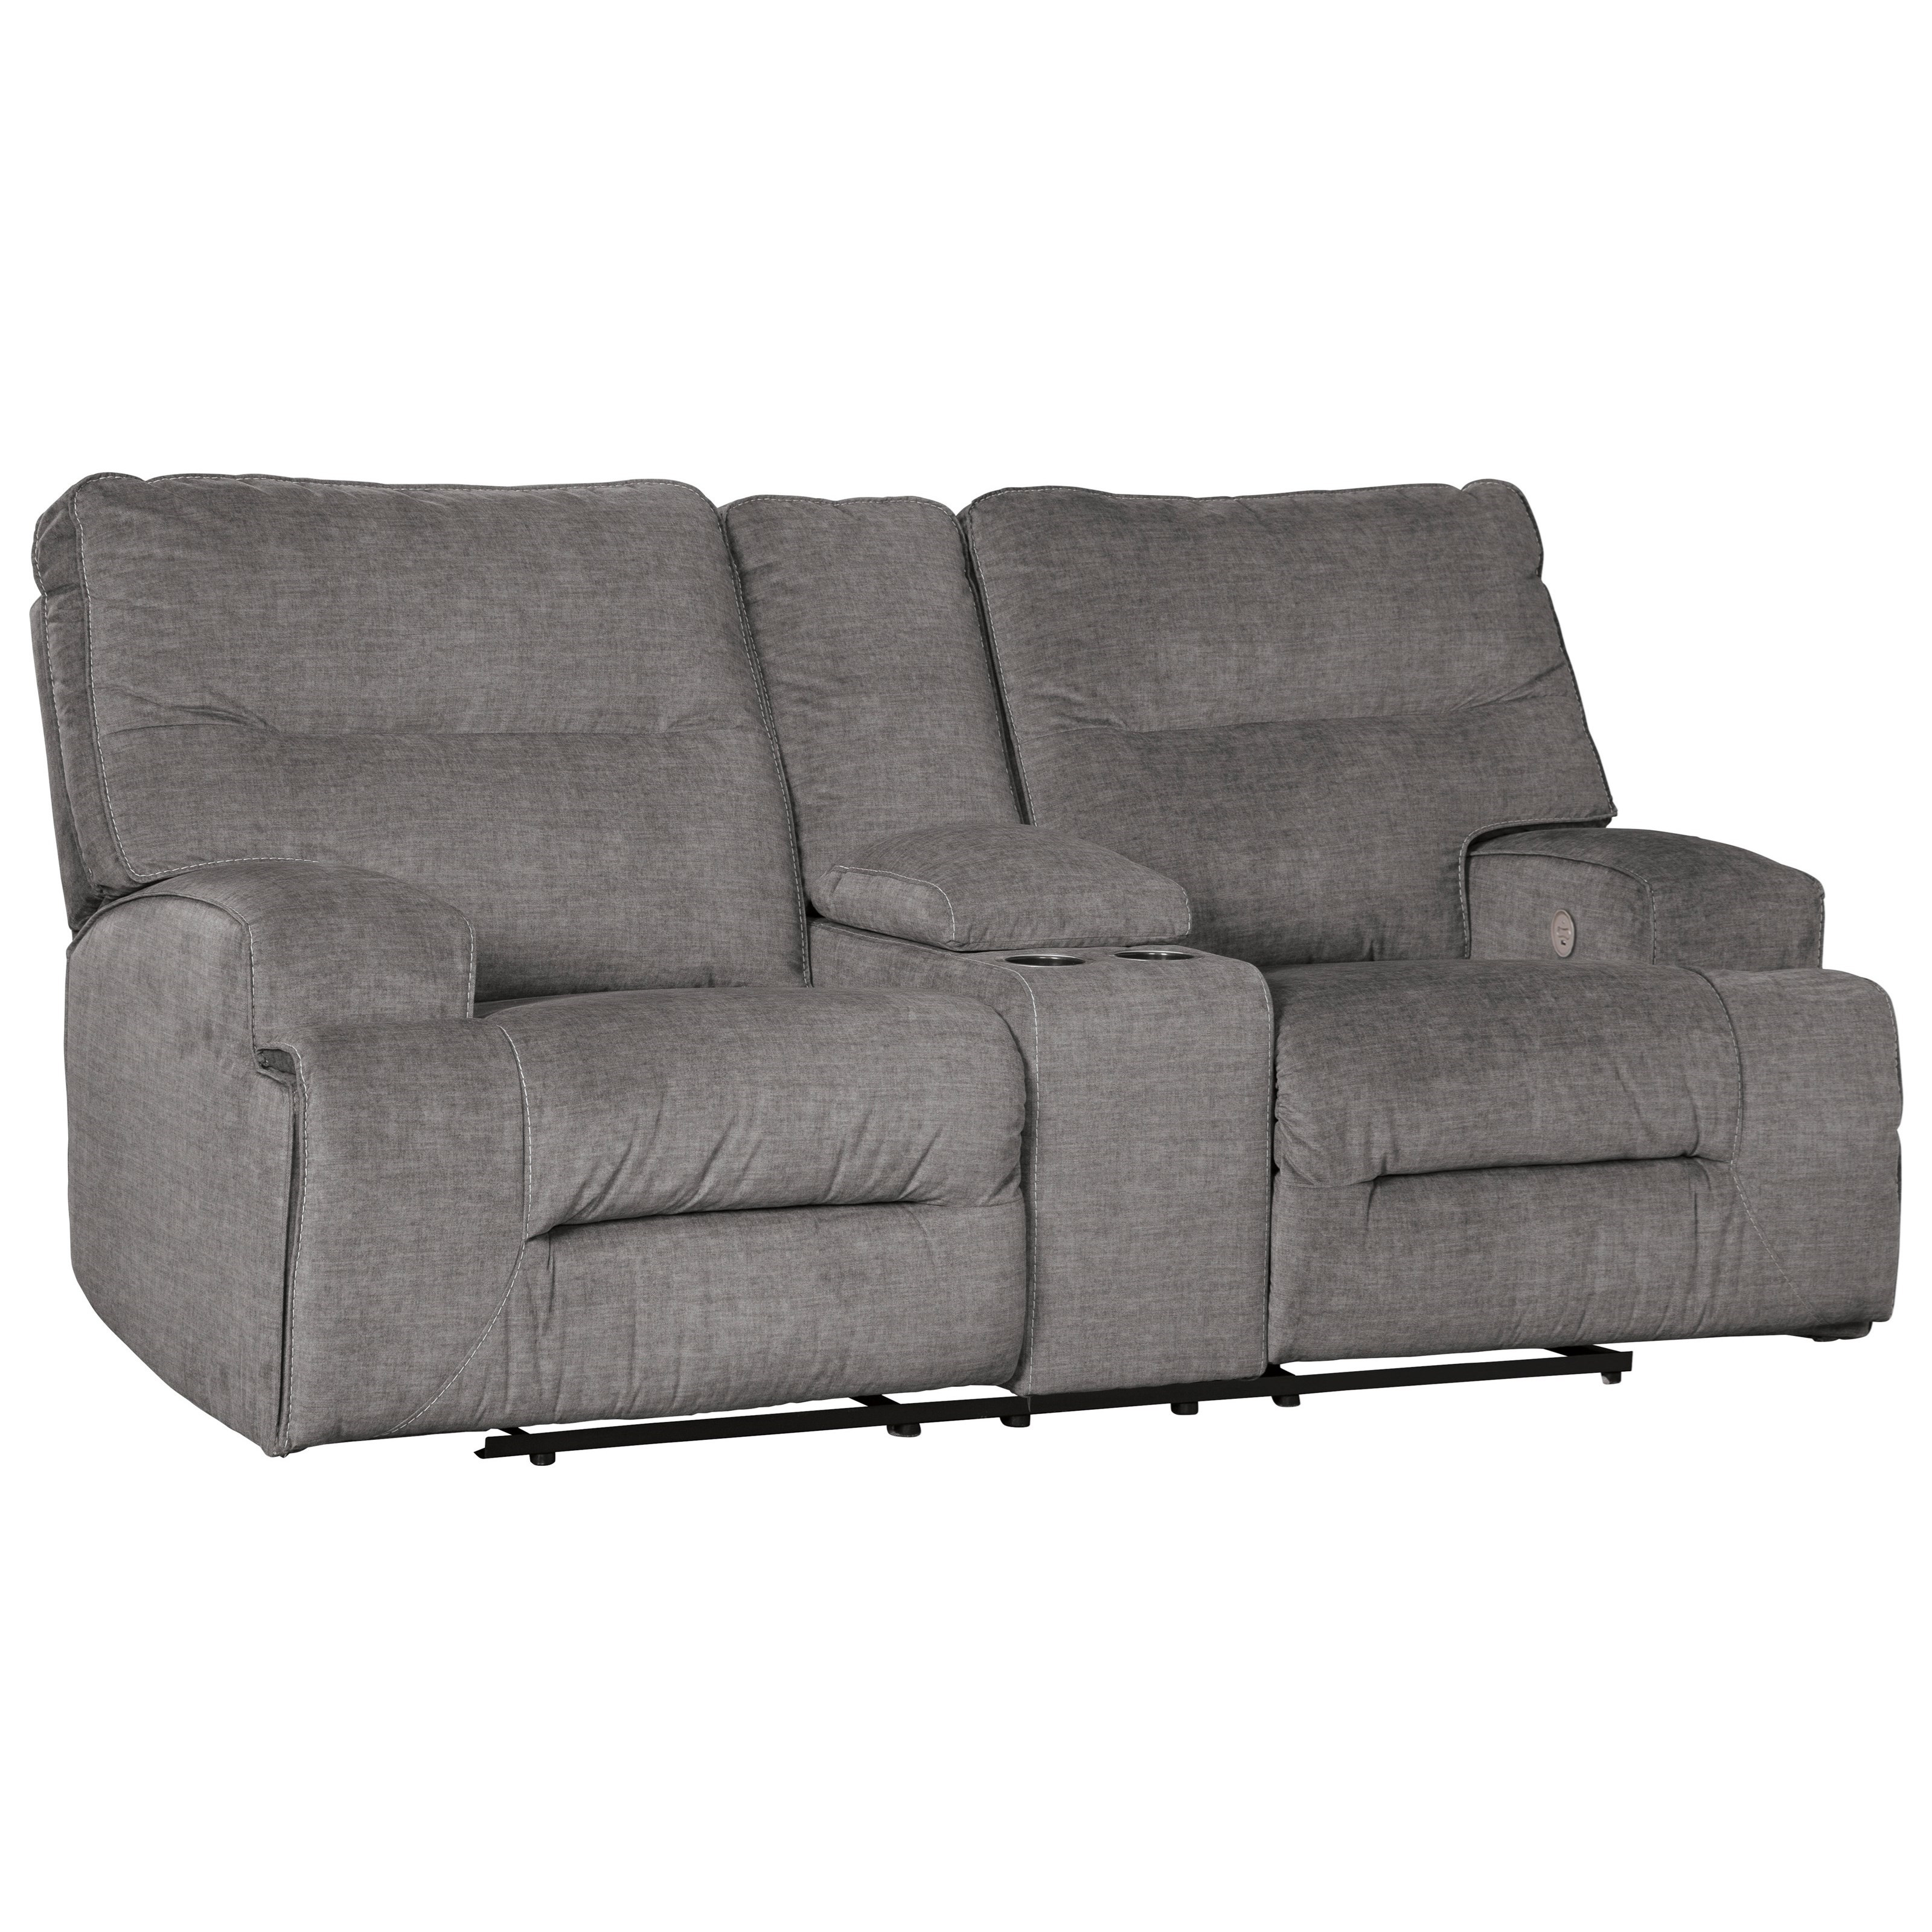 Coombs Double Reclining Power Loveseat w/ Console by Benchcraft at Zak's Warehouse Clearance Center